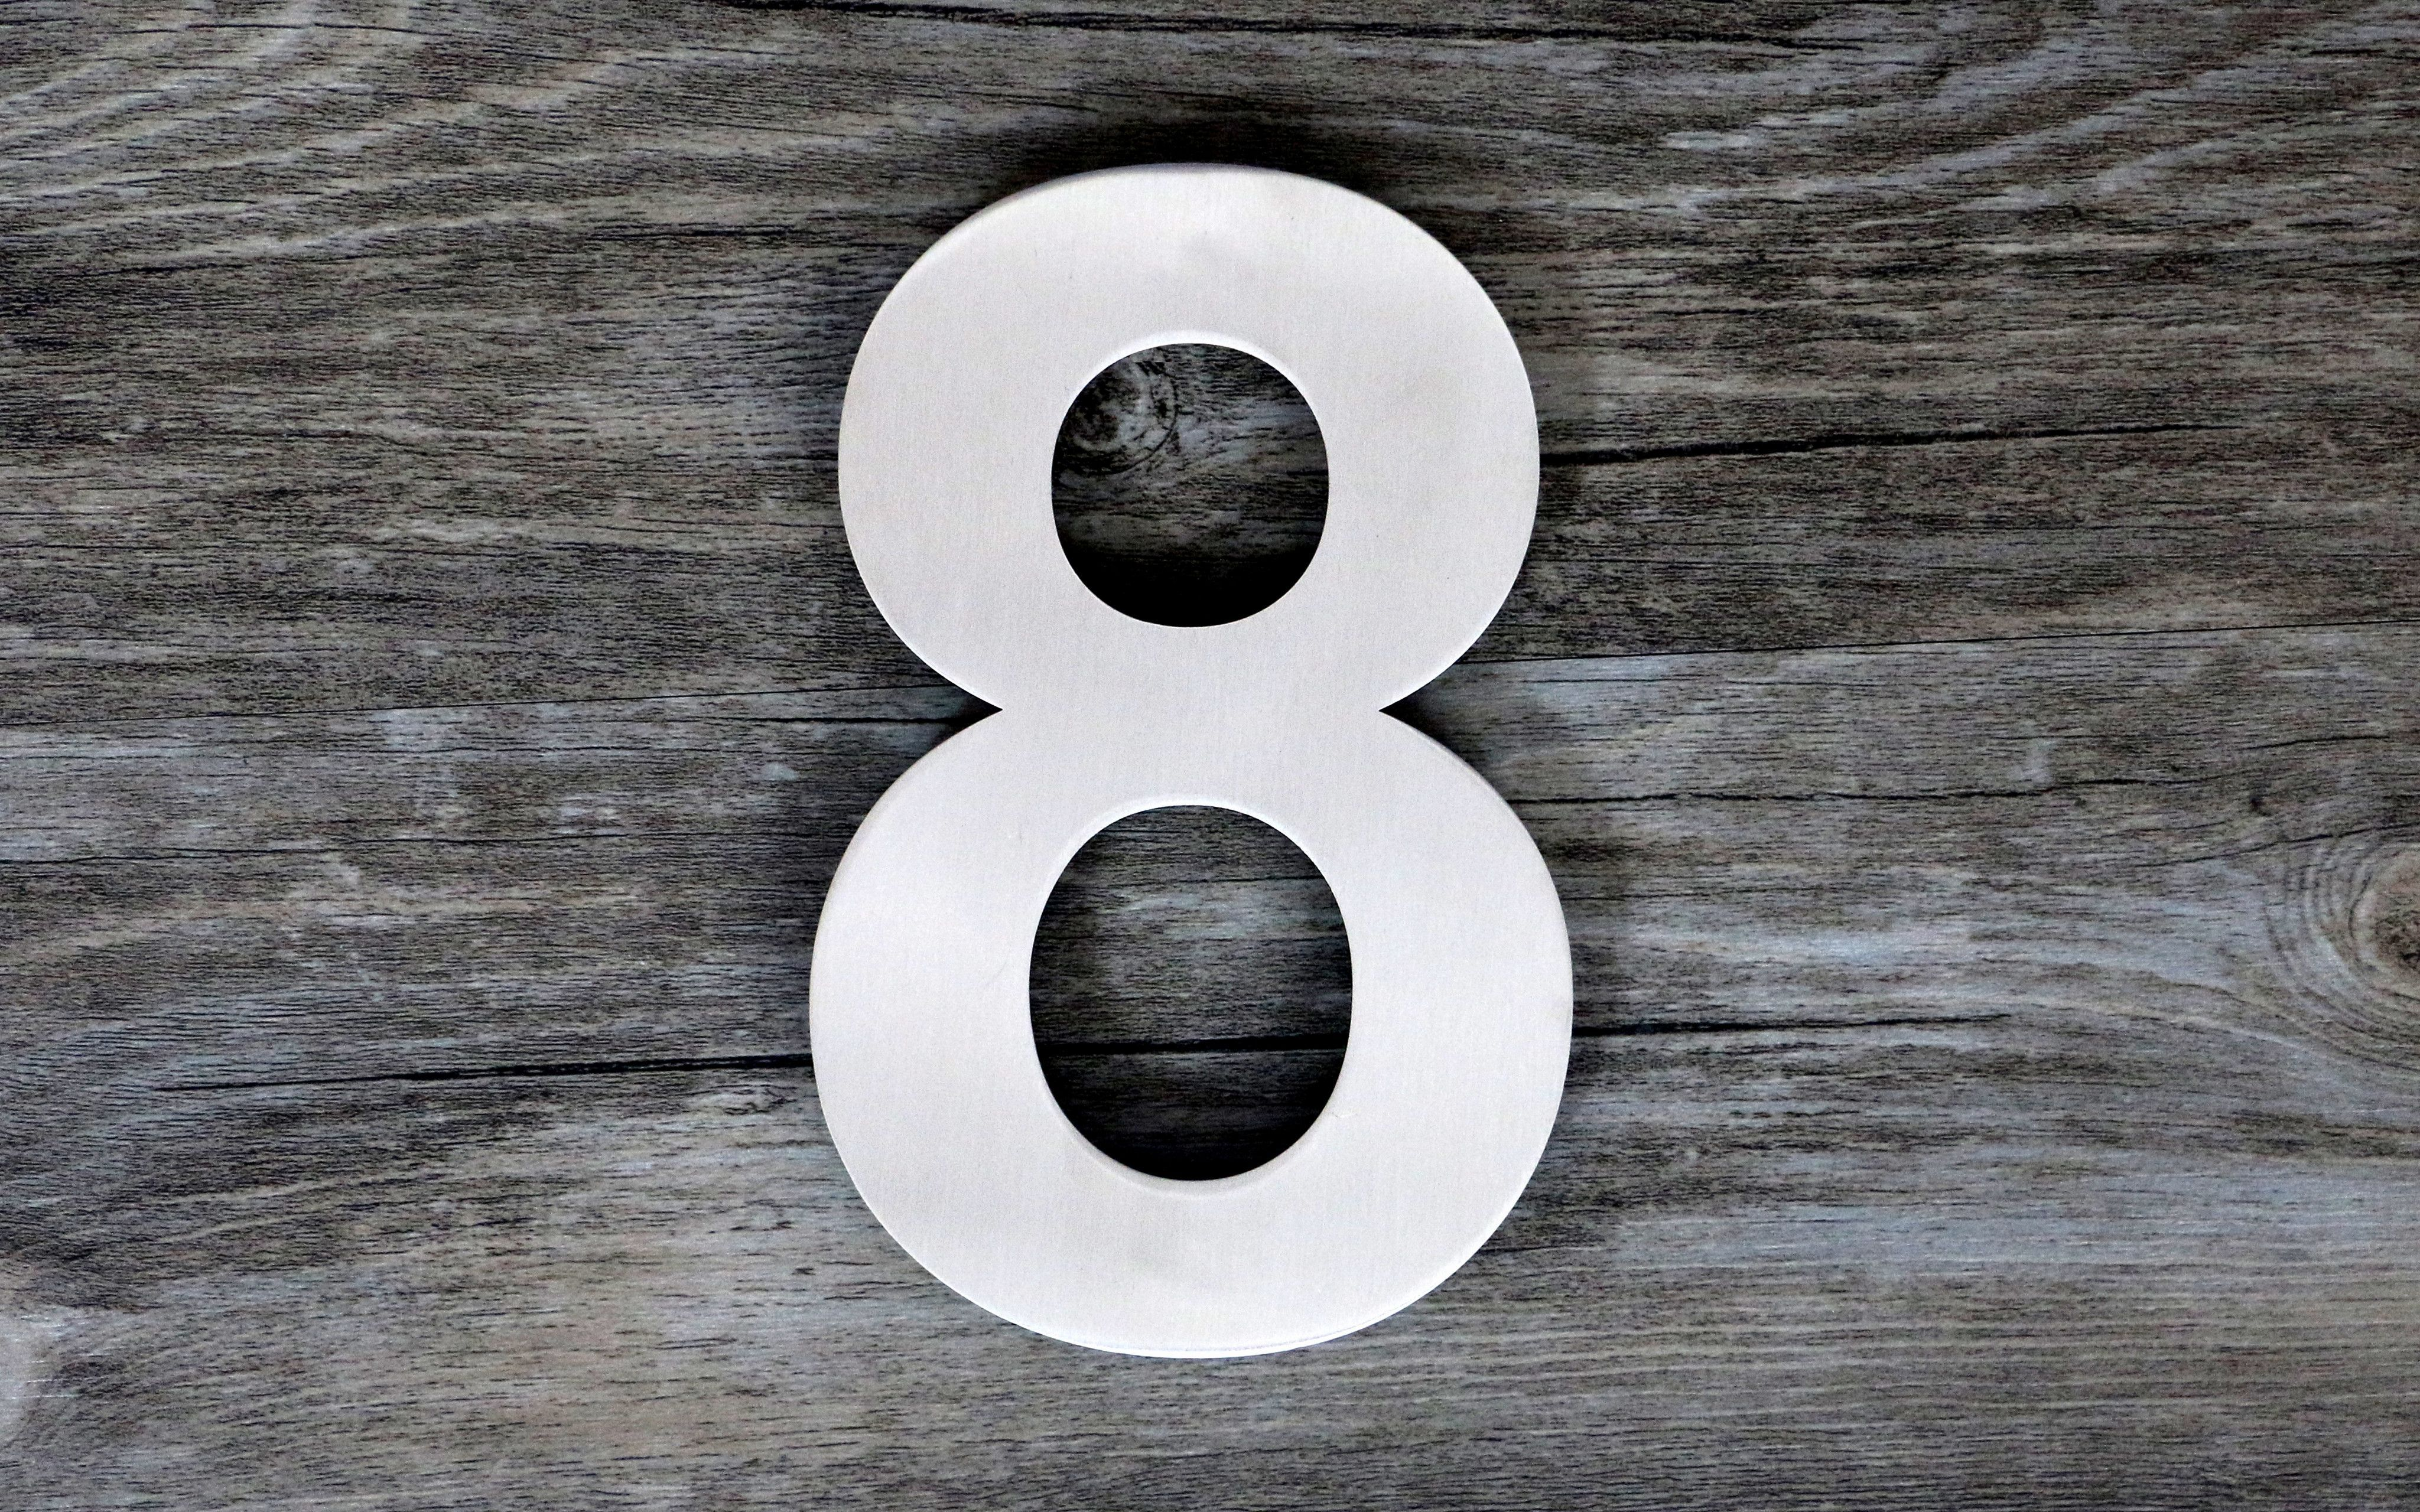 Modern floating steel house number super large 12 inch number 8 eight brushed solid 304 stainless steel floating appearance easy to install